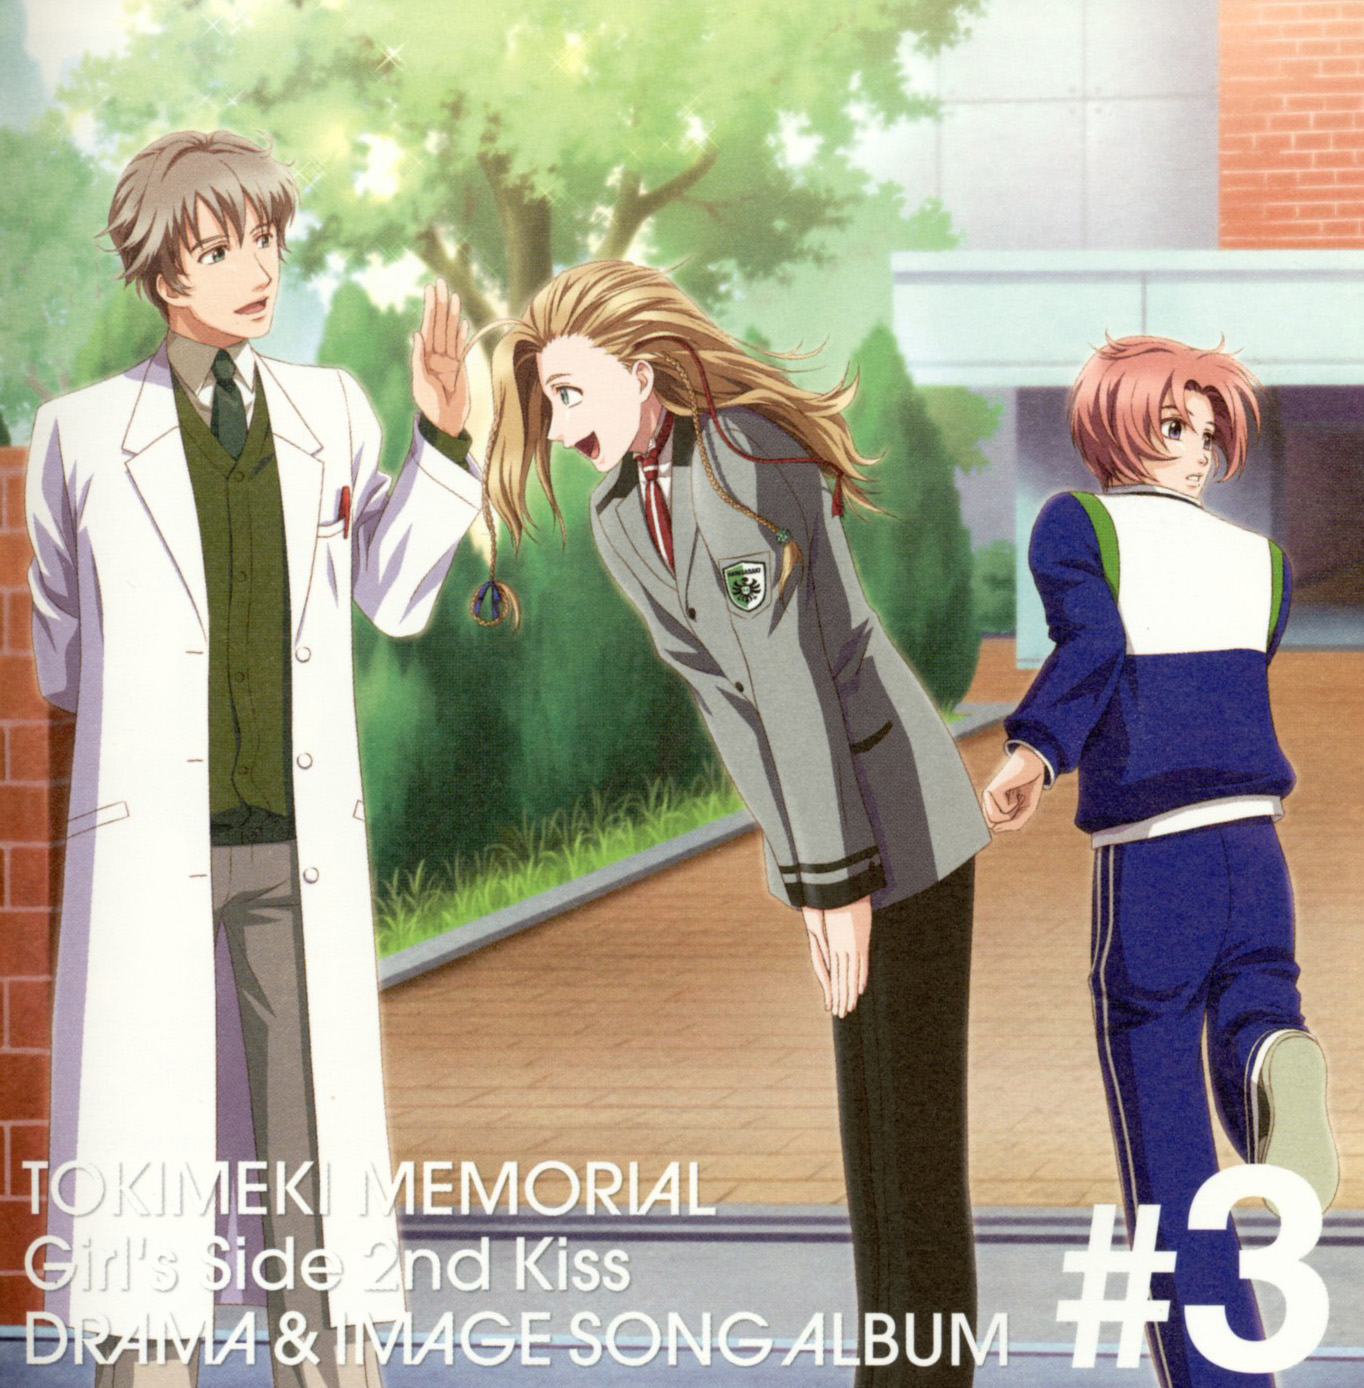 Amachi Shouta Tokimeki Memorial Girl S Side 2nd Kiss Page 2 Of